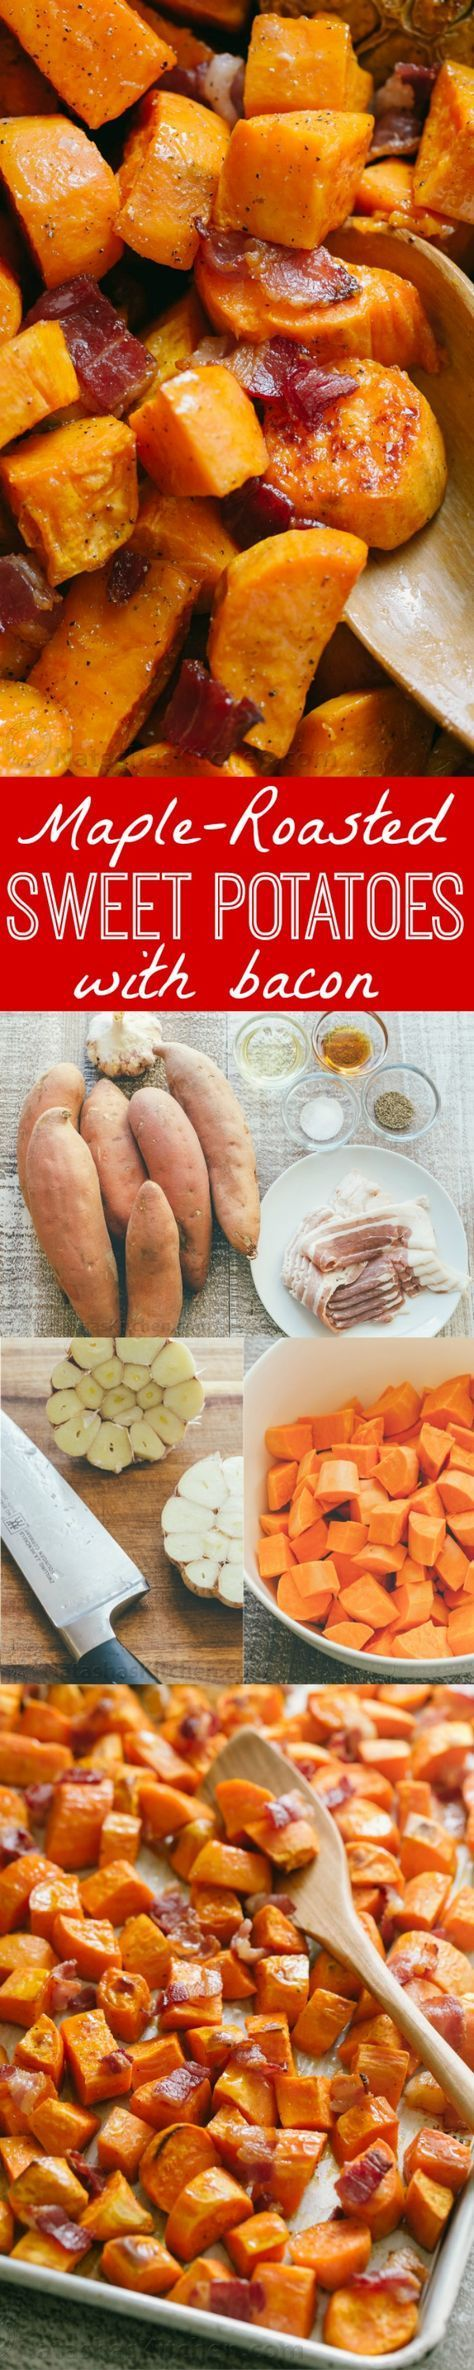 Make Maple Roasted Sweet Potatoes and Bacon once and you'll make them again and again! These roasted sweet potatoes are sweet/salty/savory and delicious.   http://natashaskitchen.com